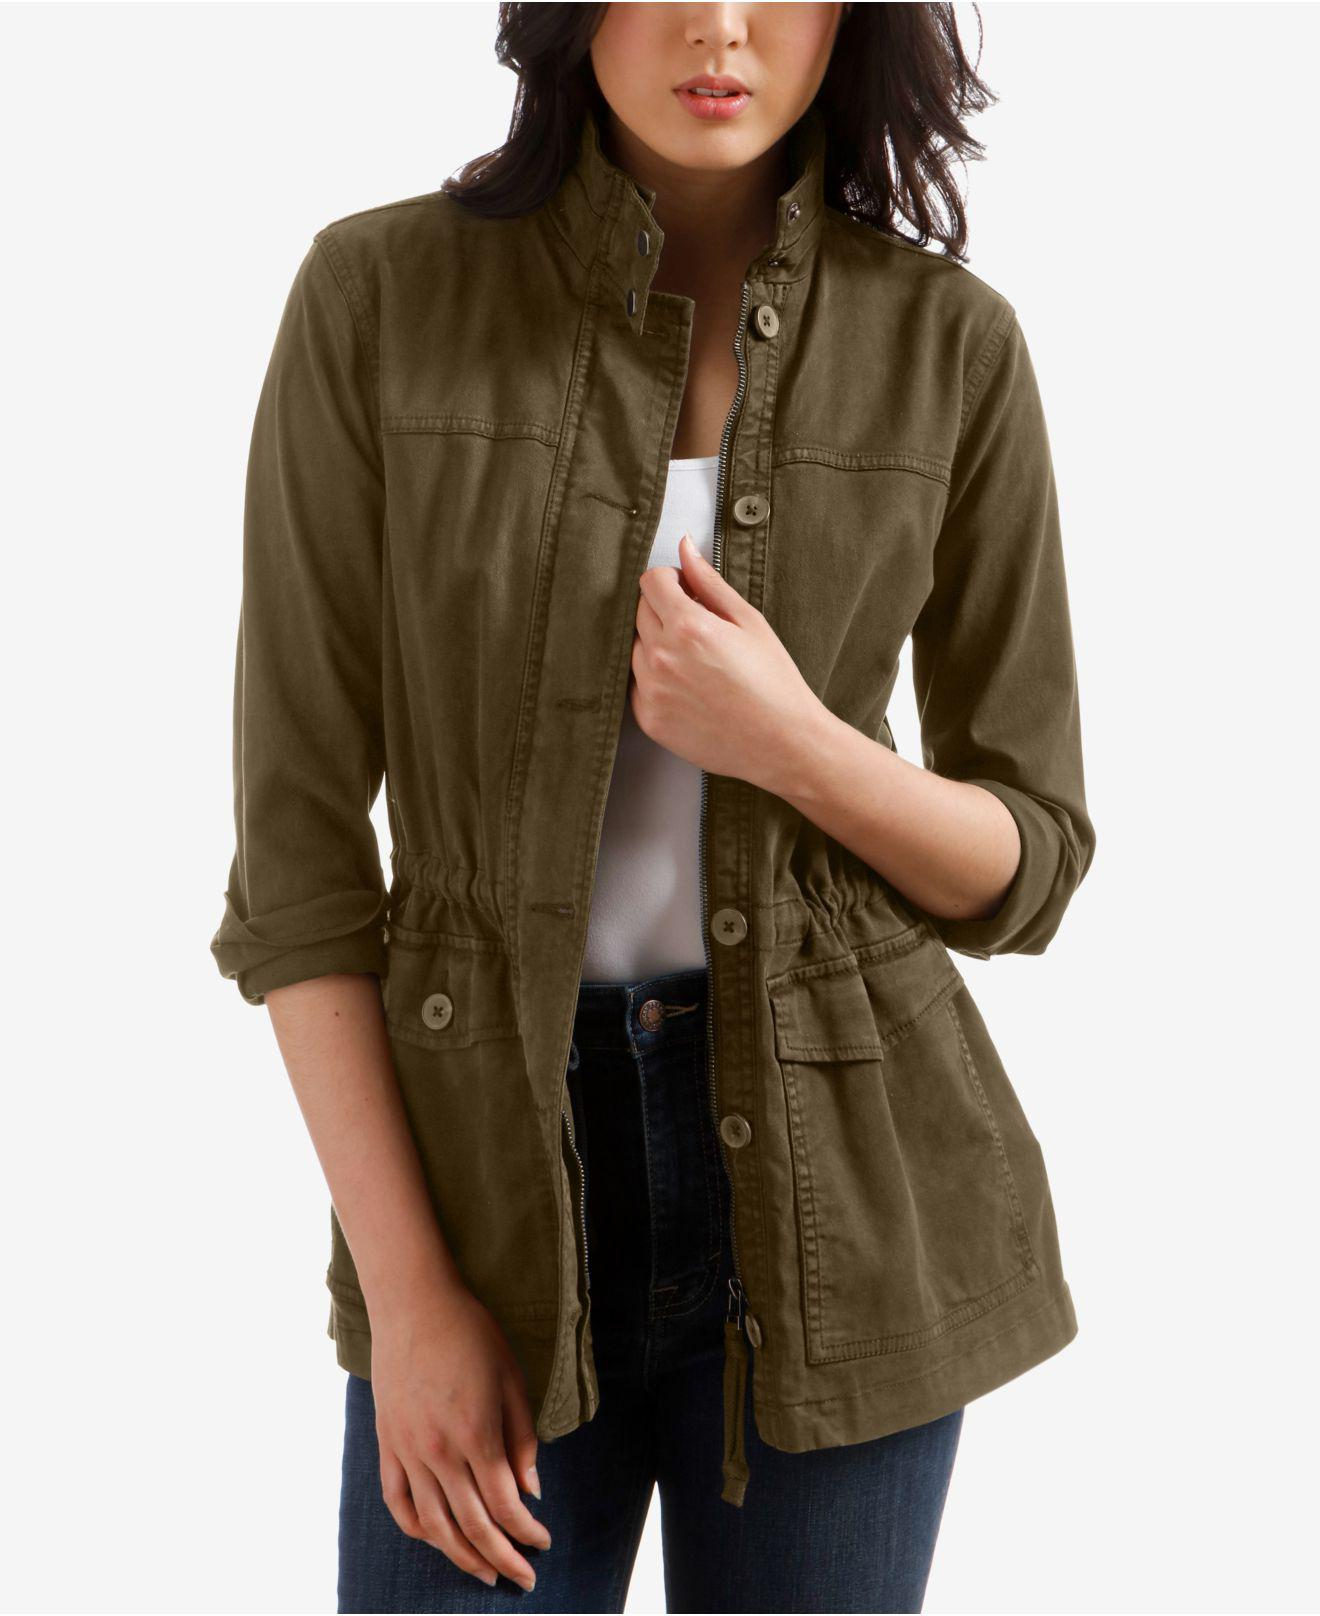 f1d6ee113f6 Lyst - Lucky Brand Cargo Jacket in Green